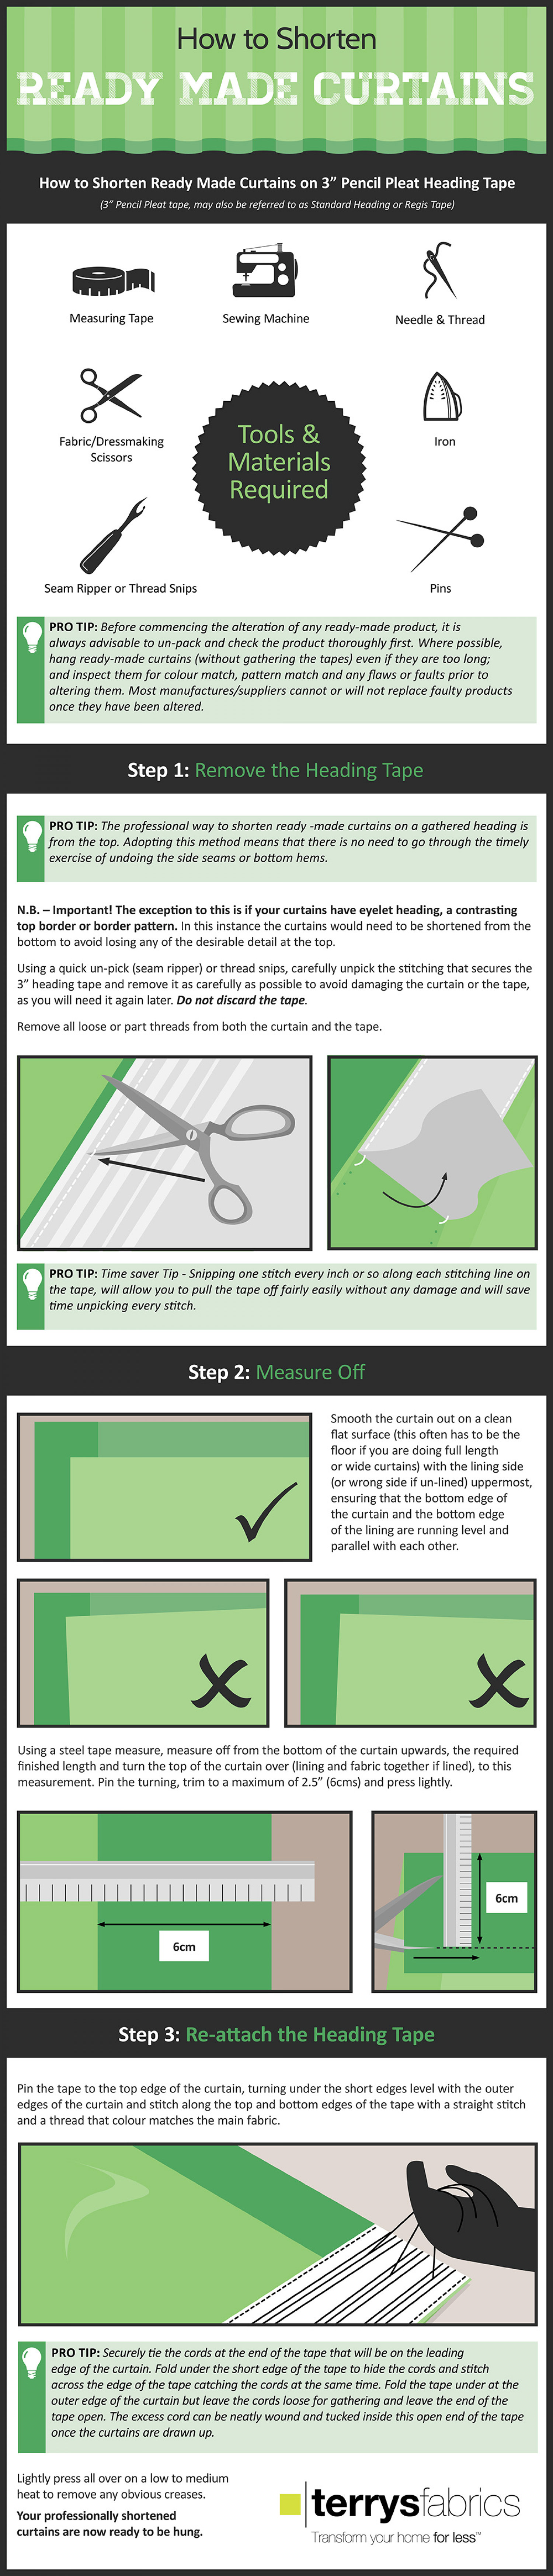 How to shorten Ready Made Curtains Infographic